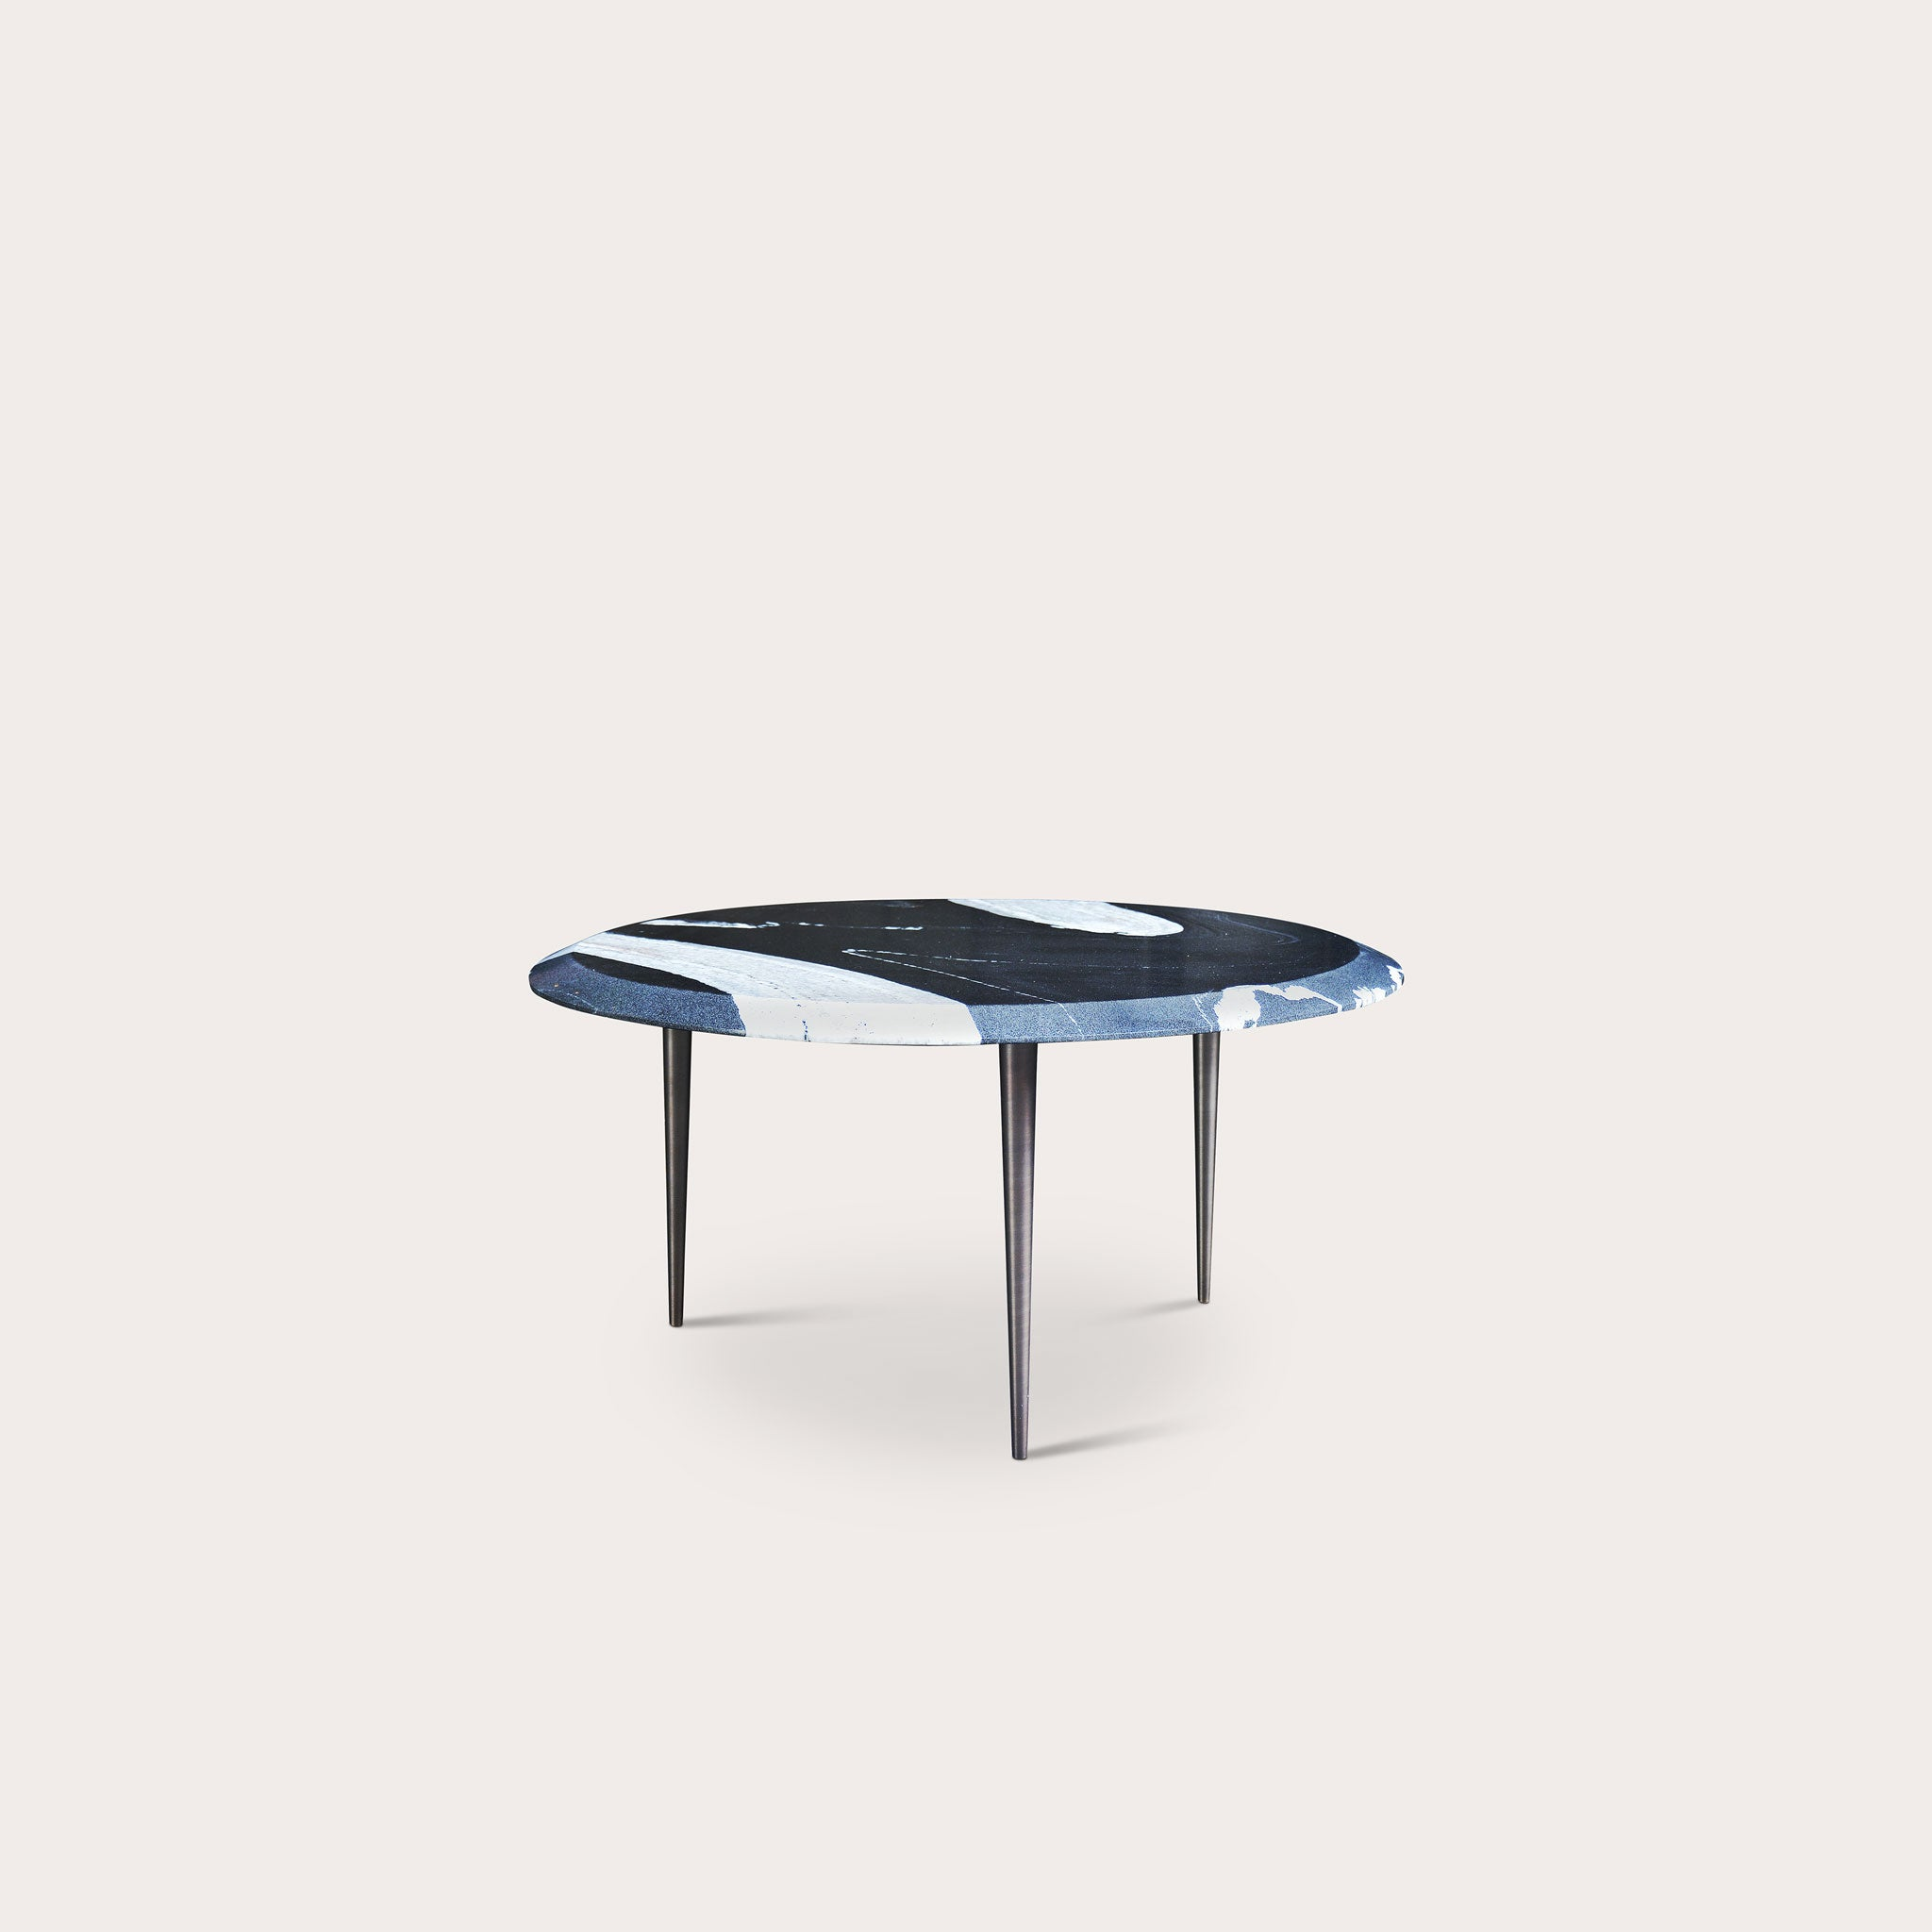 Moon Copacabana Side Table Tables Simone Coste Designer Furniture Sku: 992-230-10057